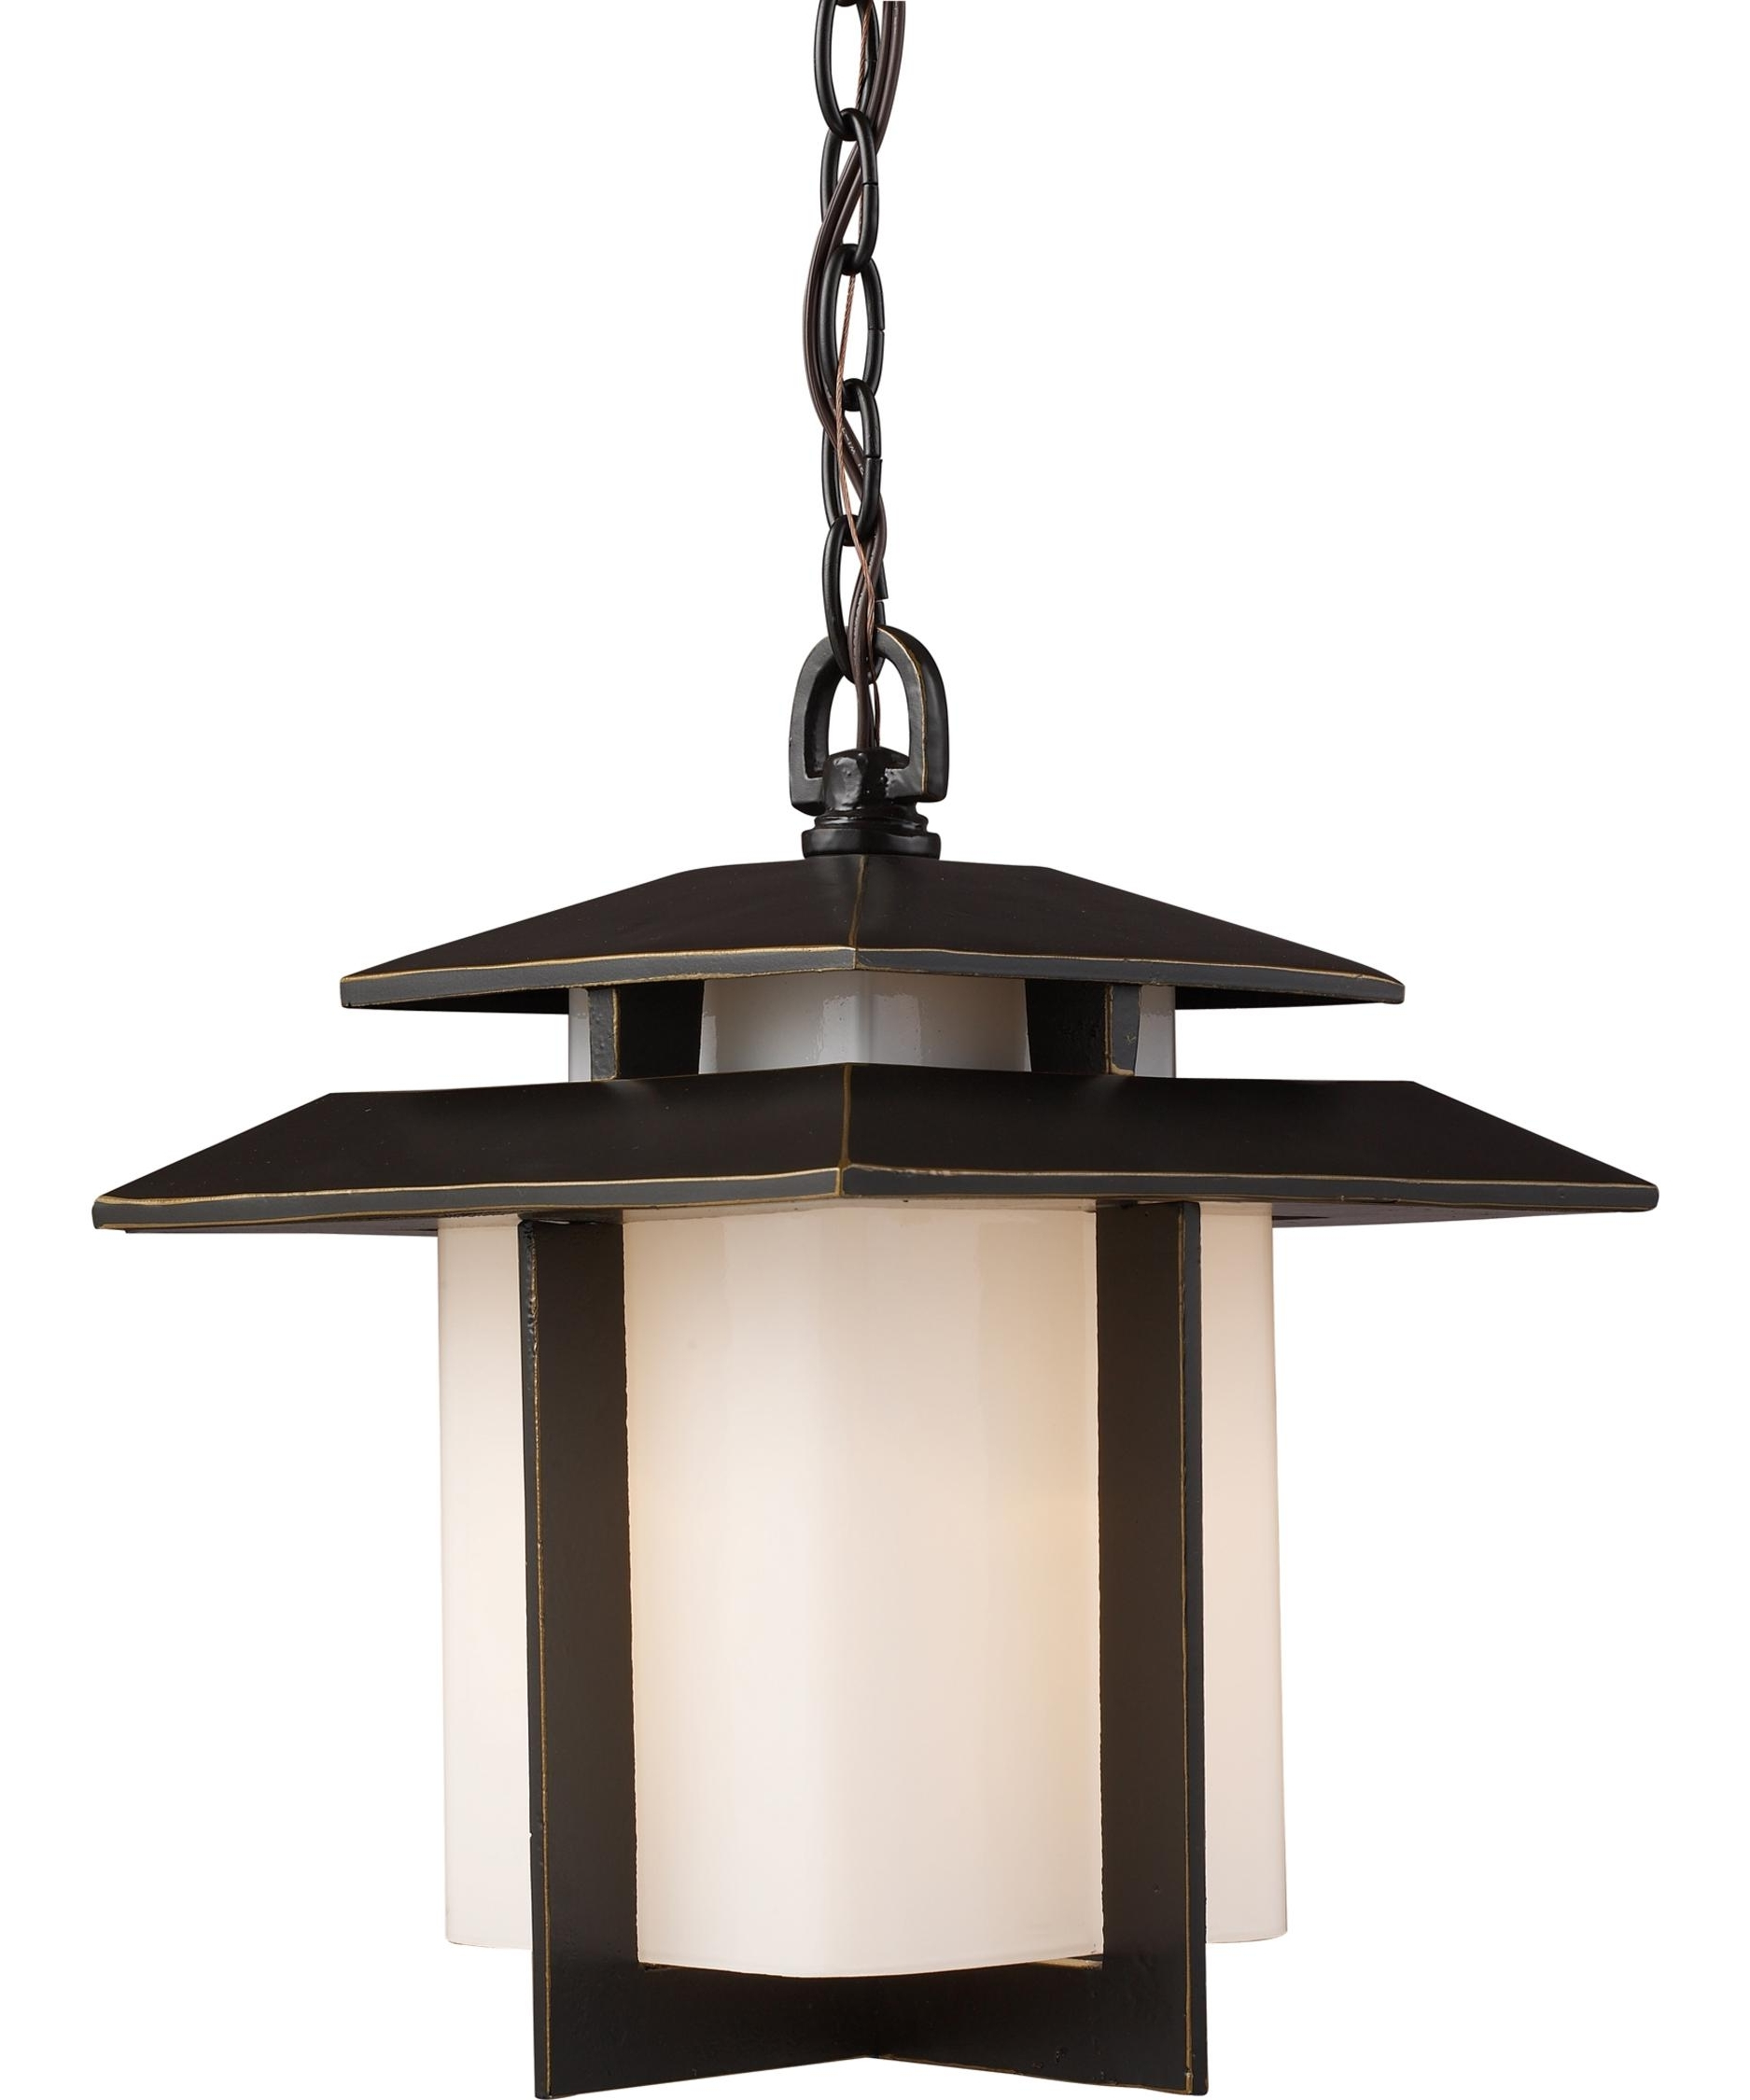 Most Recently Released Light : Outdoor Lighting Ideas Without Electricity Exterior Fixtures Inside Outdoor Lighting Pendant Fixtures (View 5 of 20)